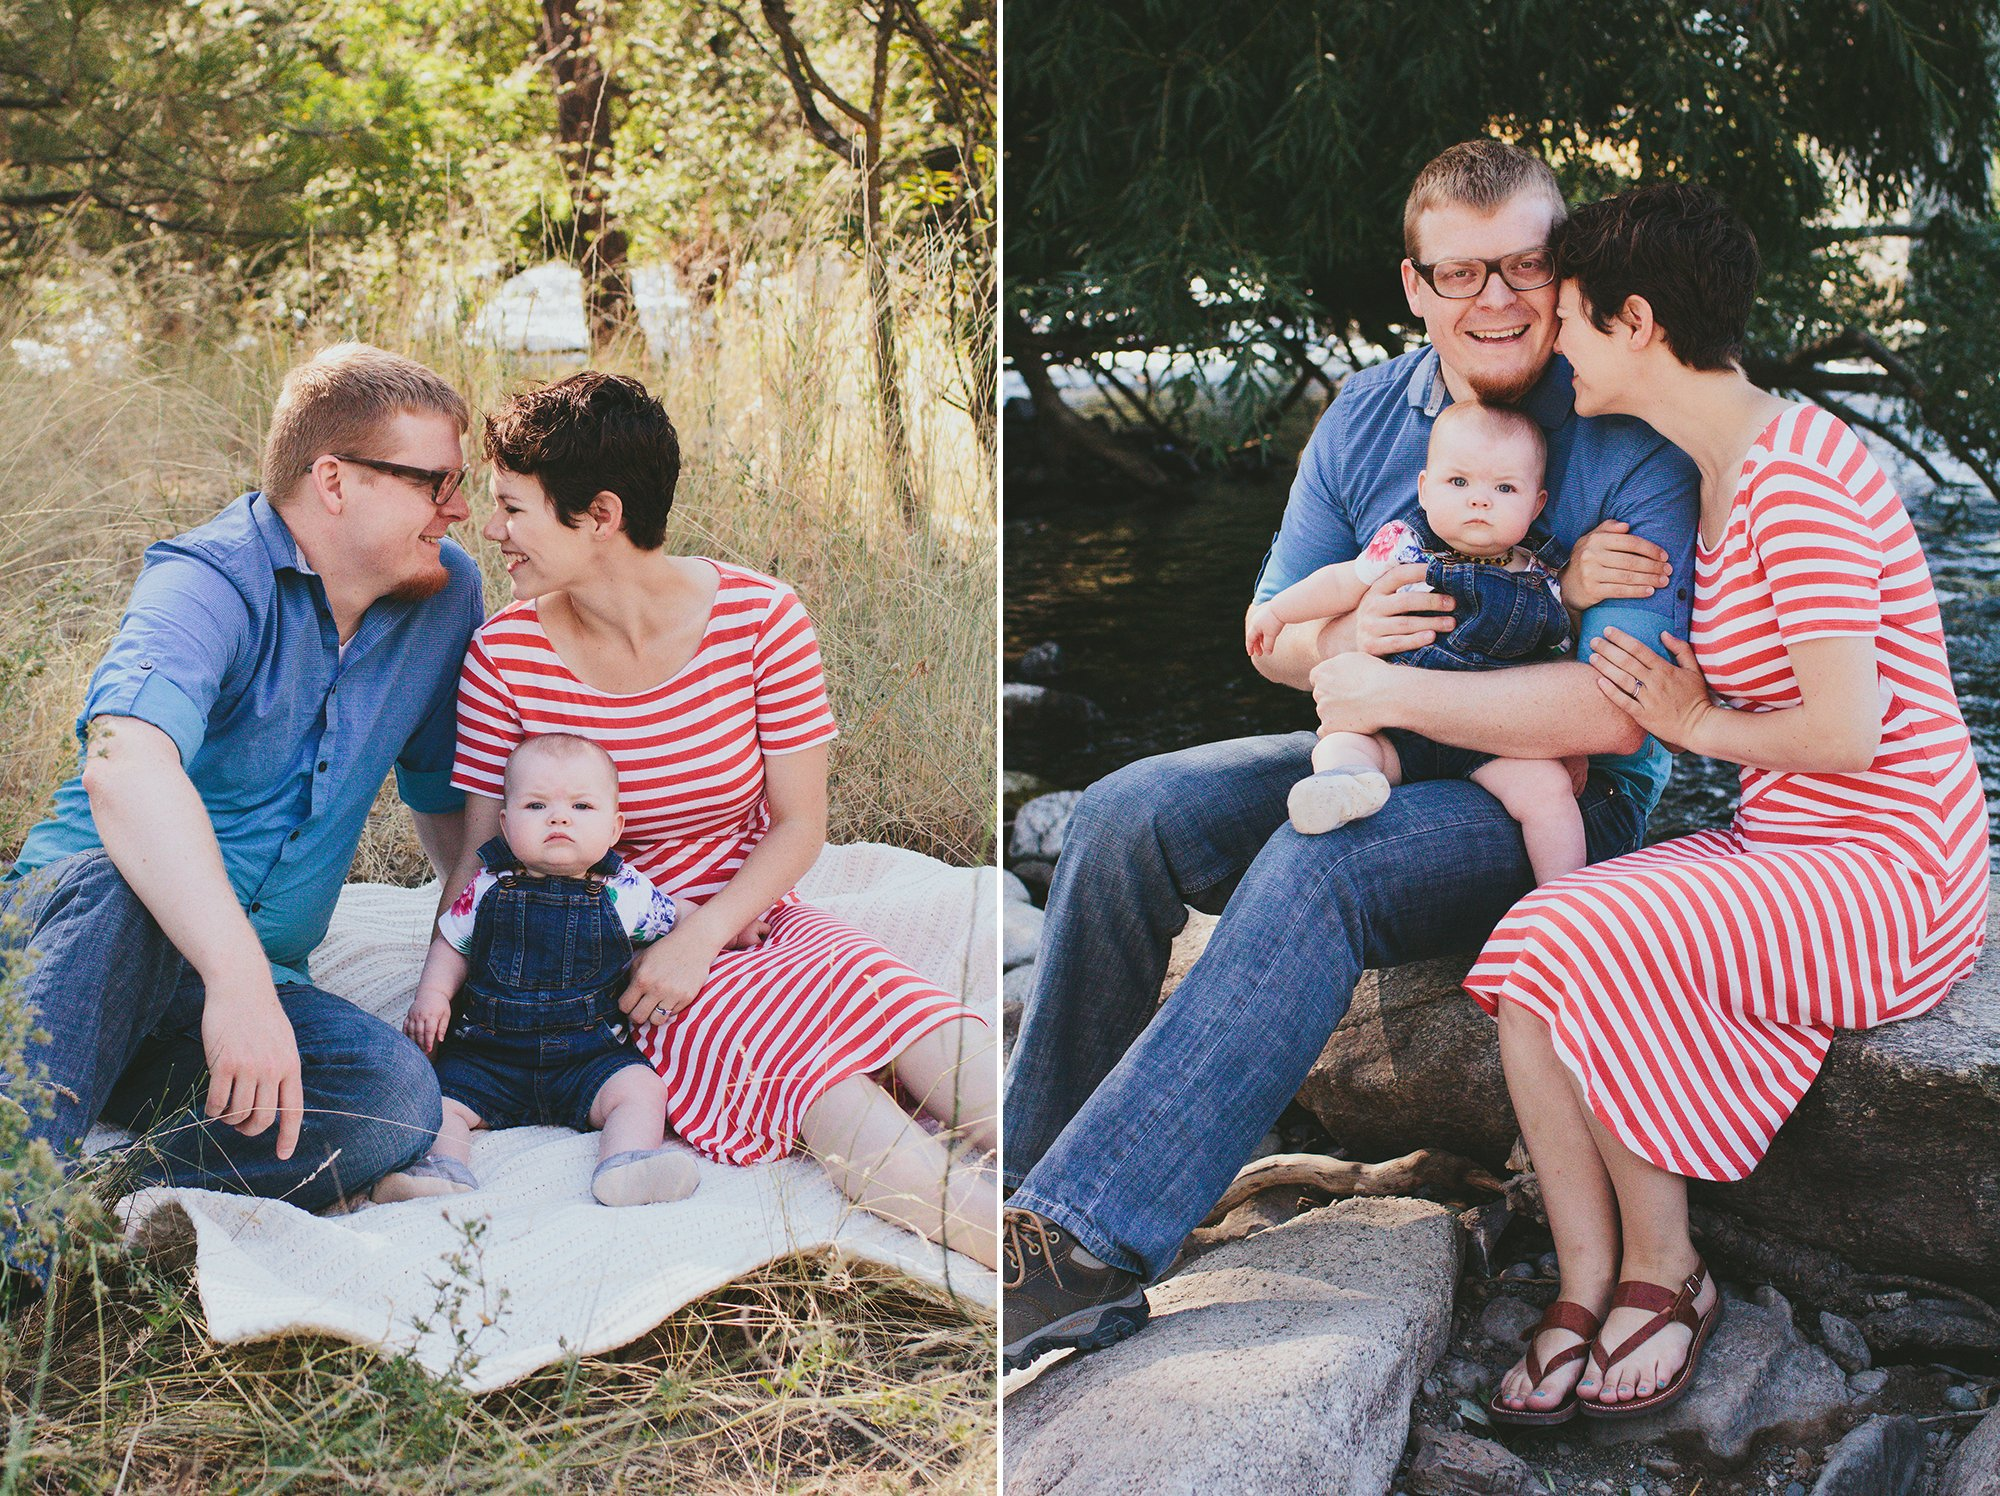 Family Photos by April Egly